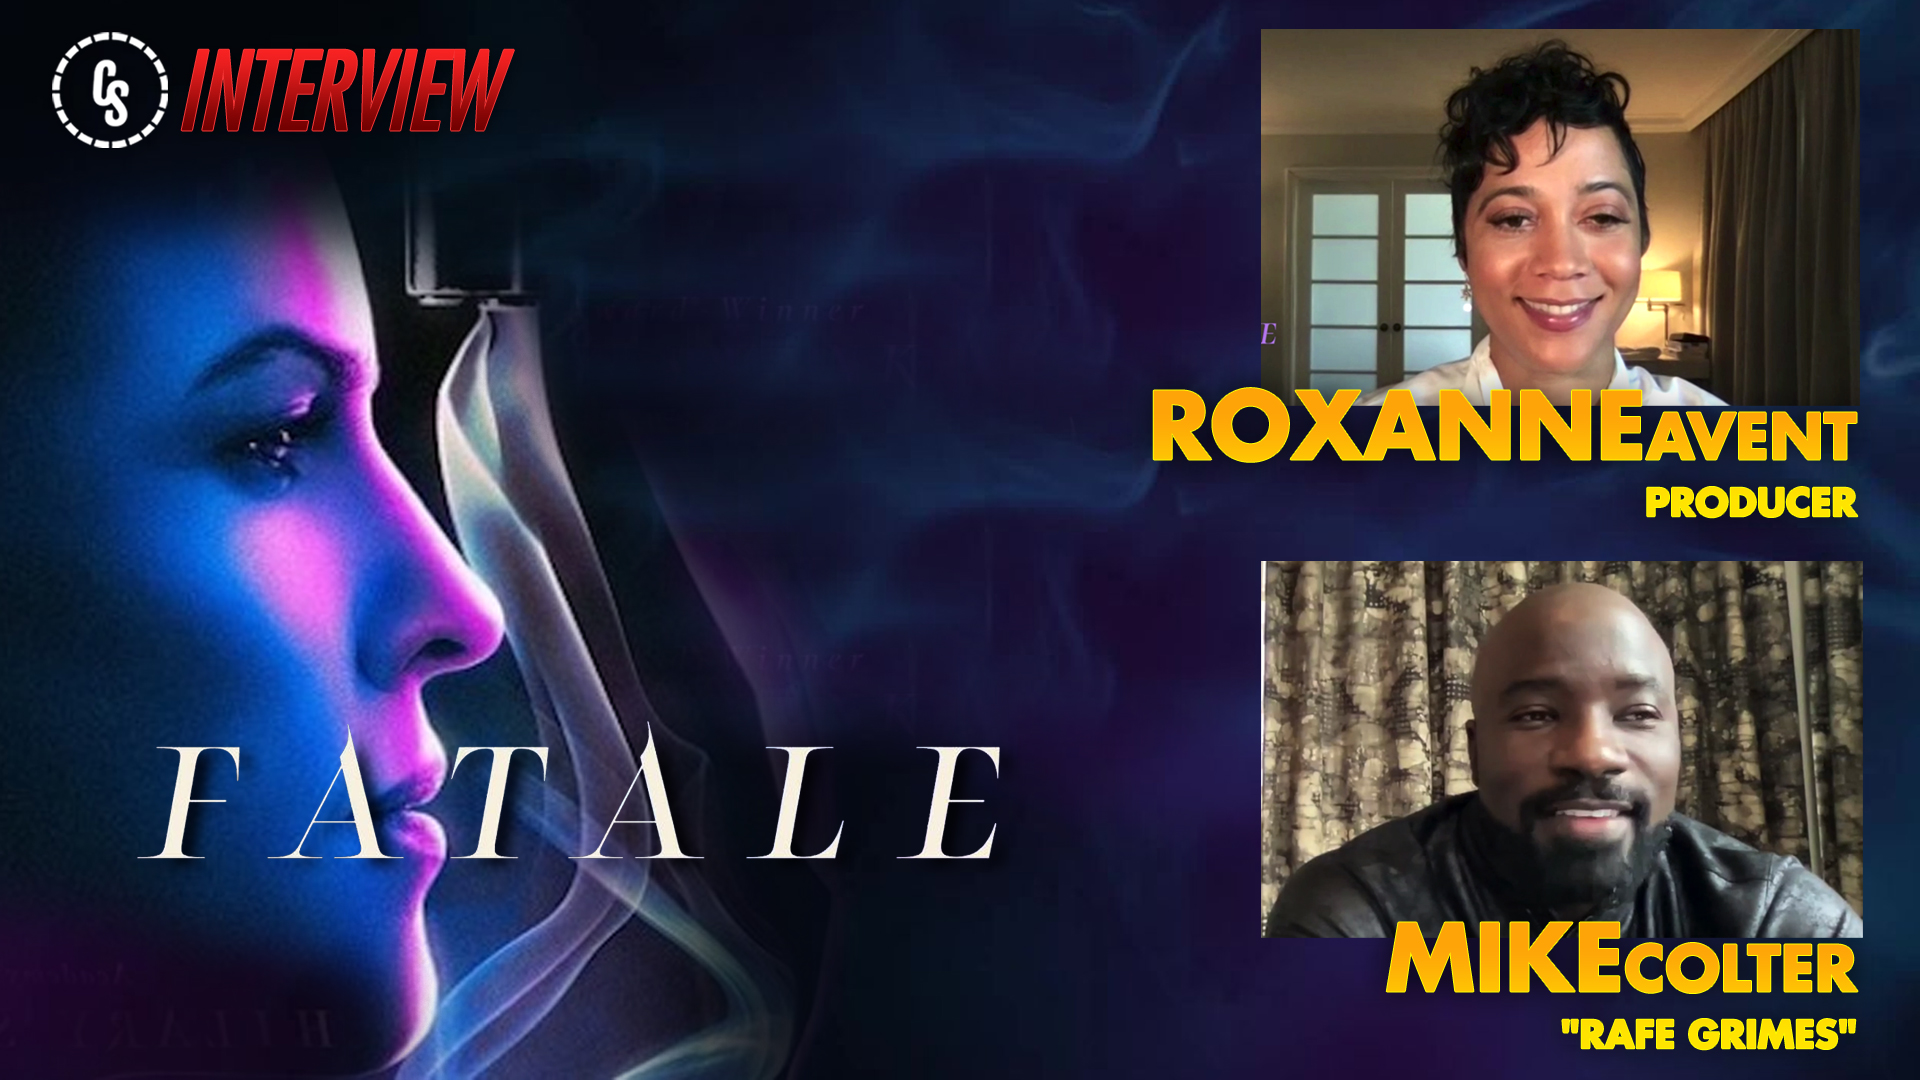 CS Video: Producer Roxanne Avent & Star Mike Colter Talk Fatale